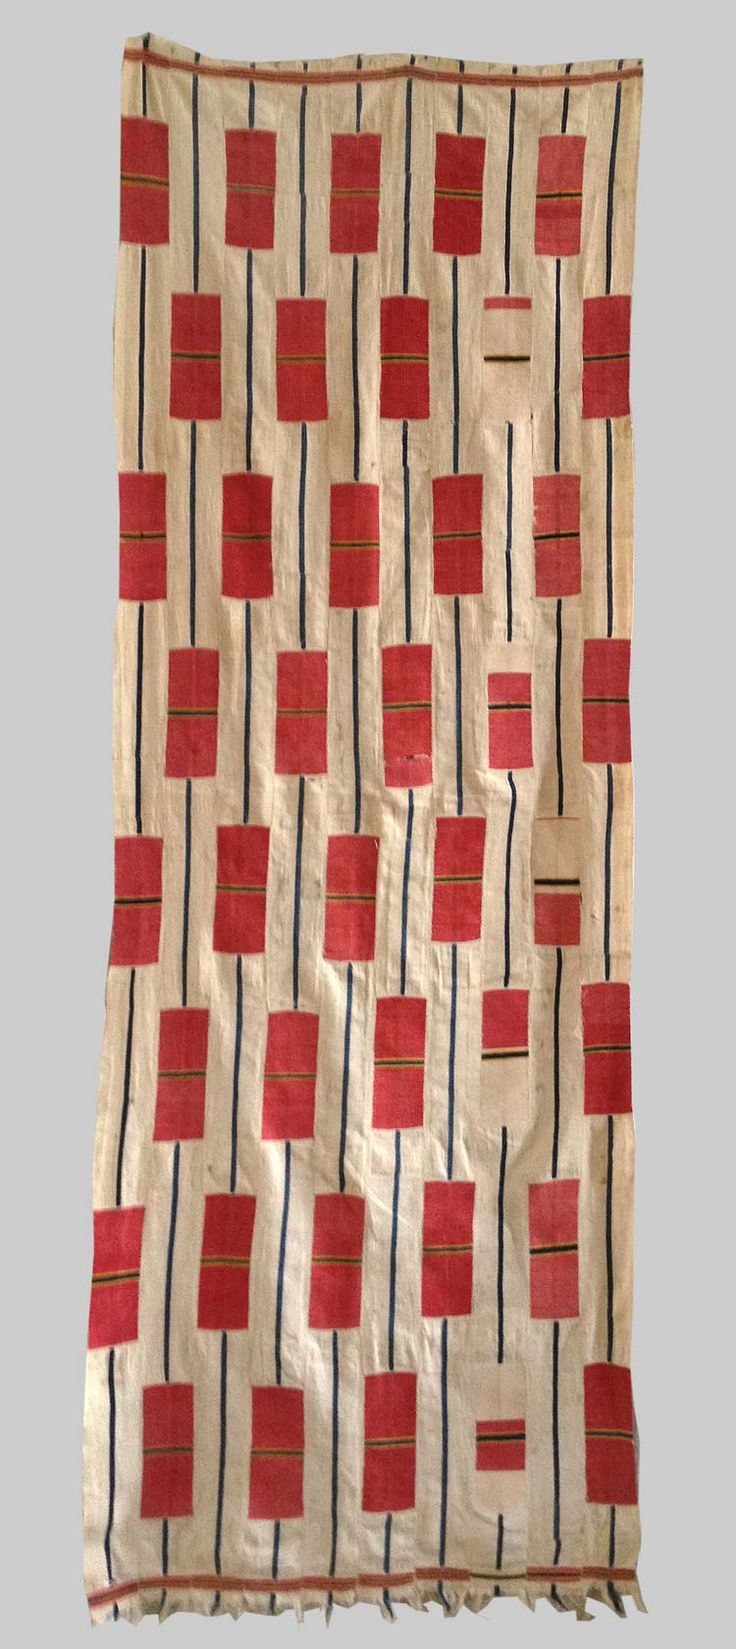 Esther Fitzgerald Rare Textiles  Cotton strip weaving Woven in 10 strips from the ewe people  Ghana early 20th century